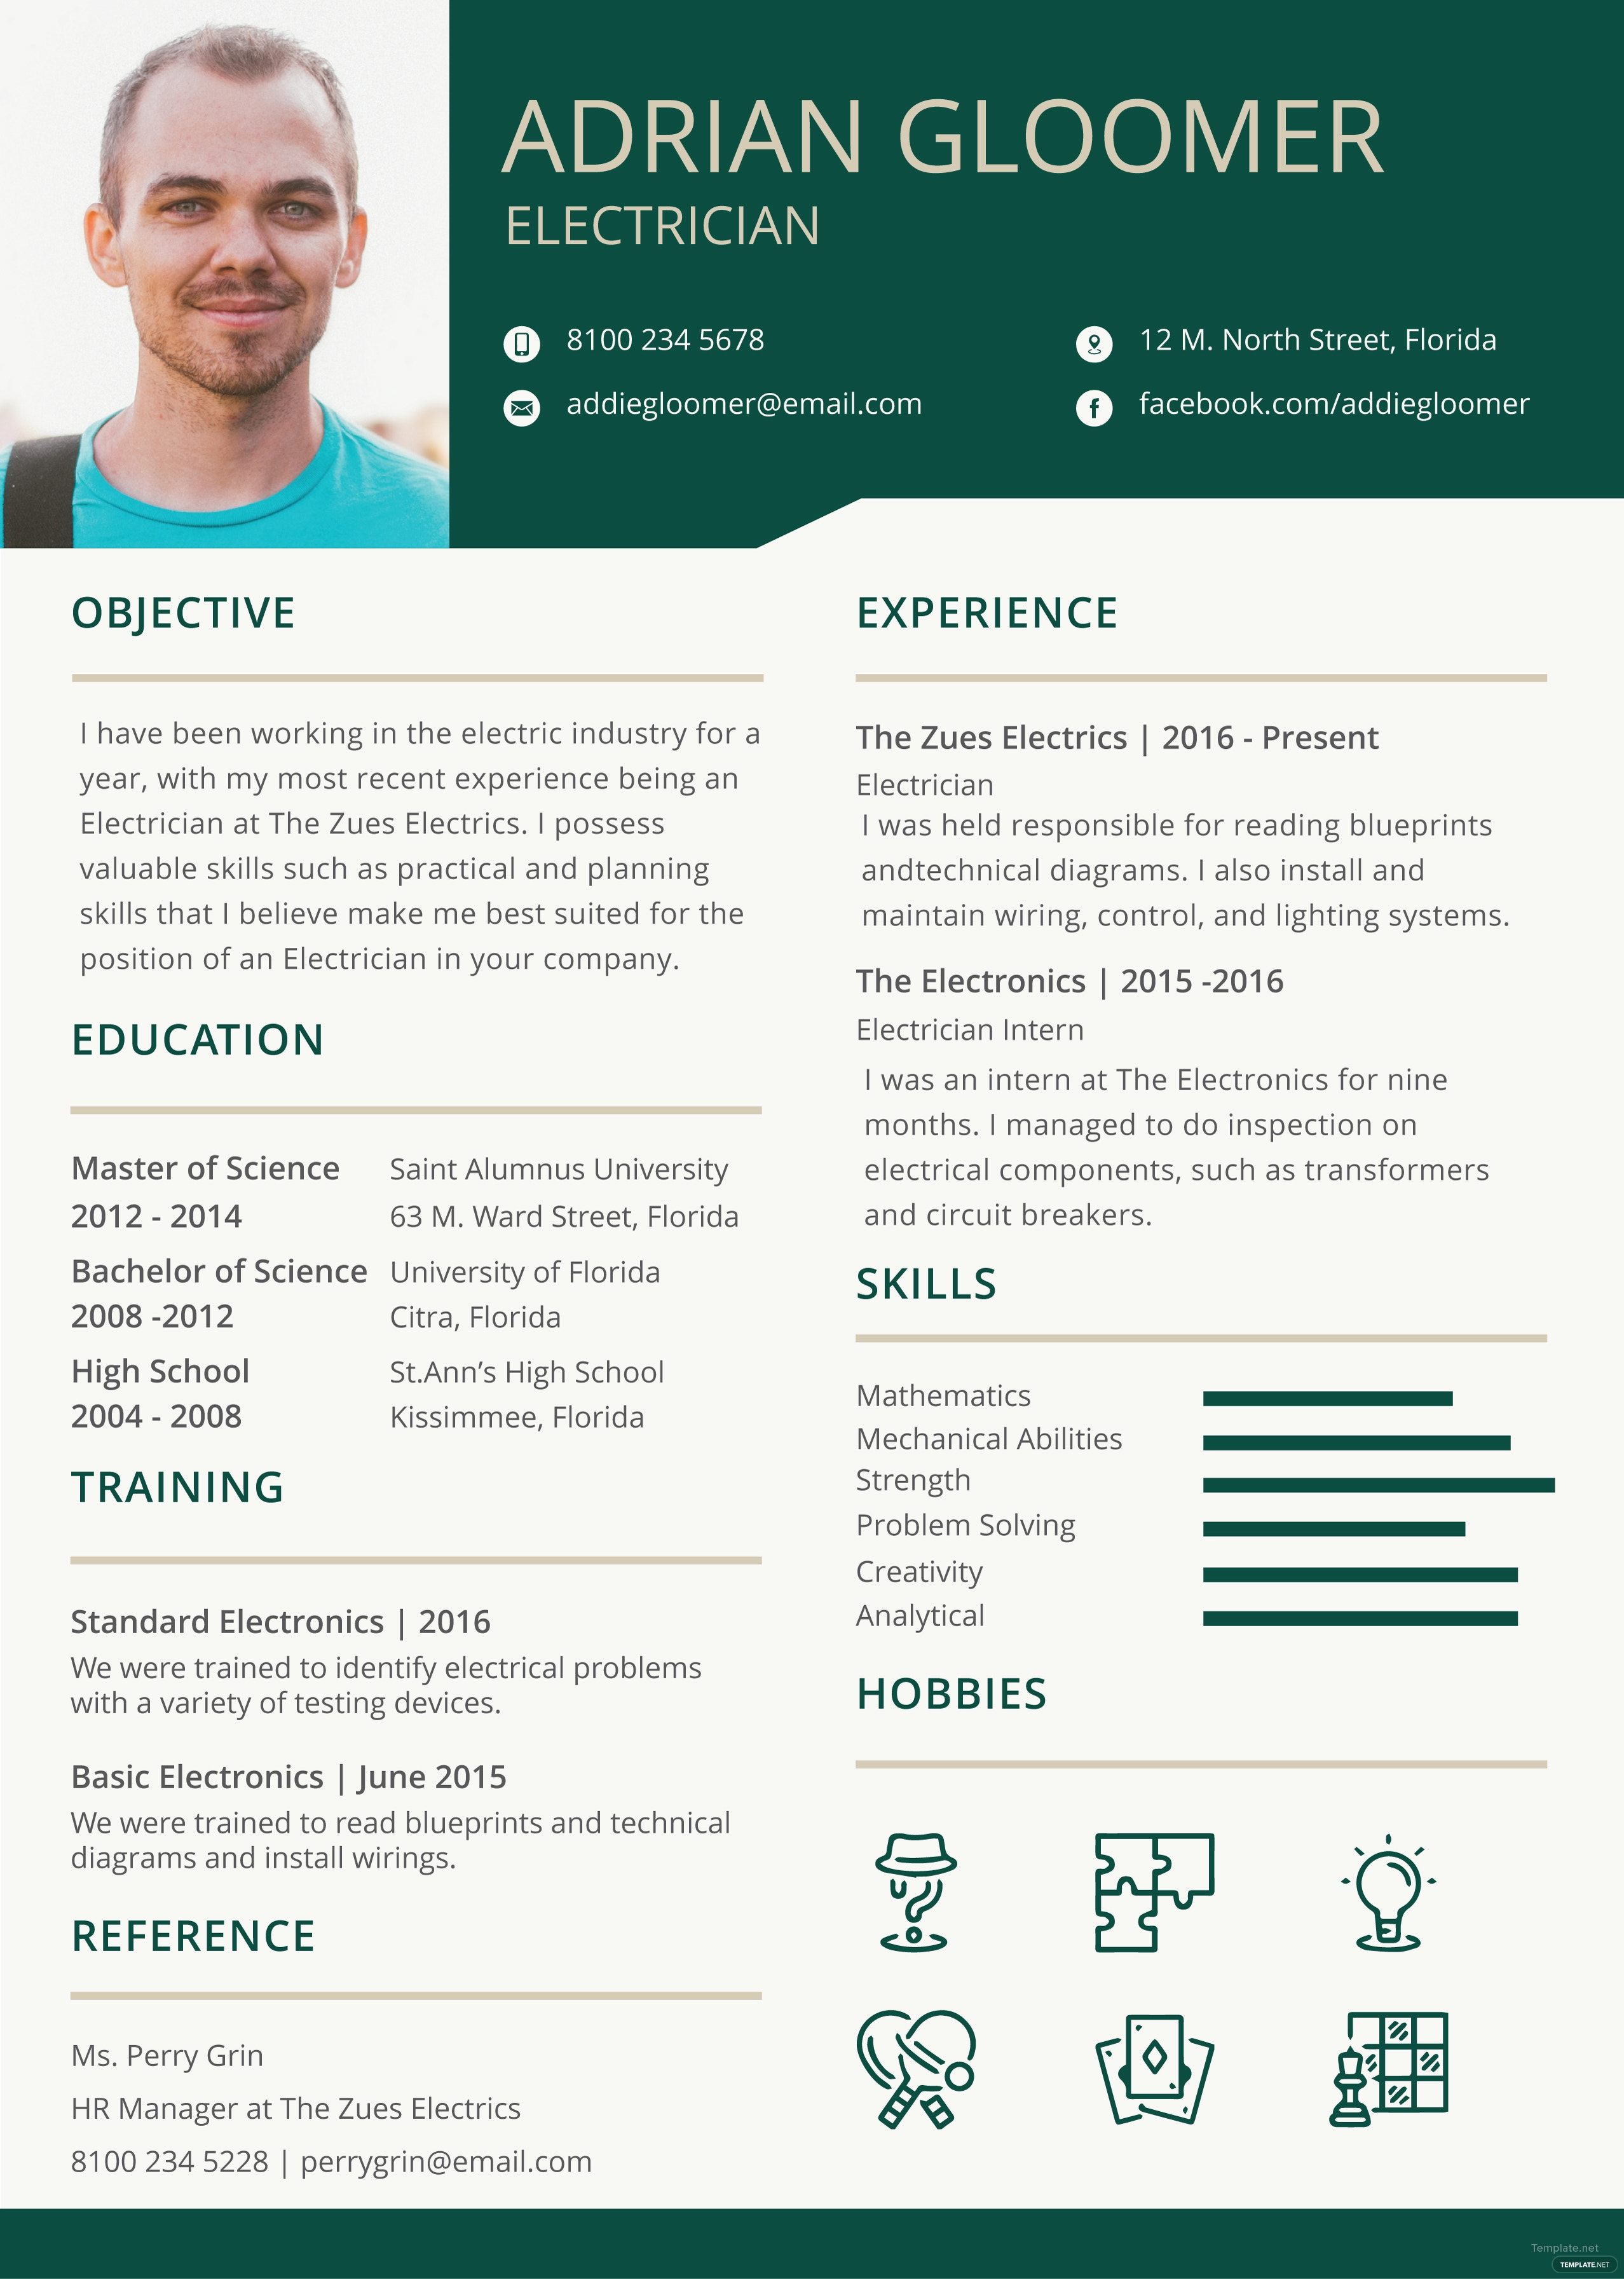 free electrician resume and cv template in adobe